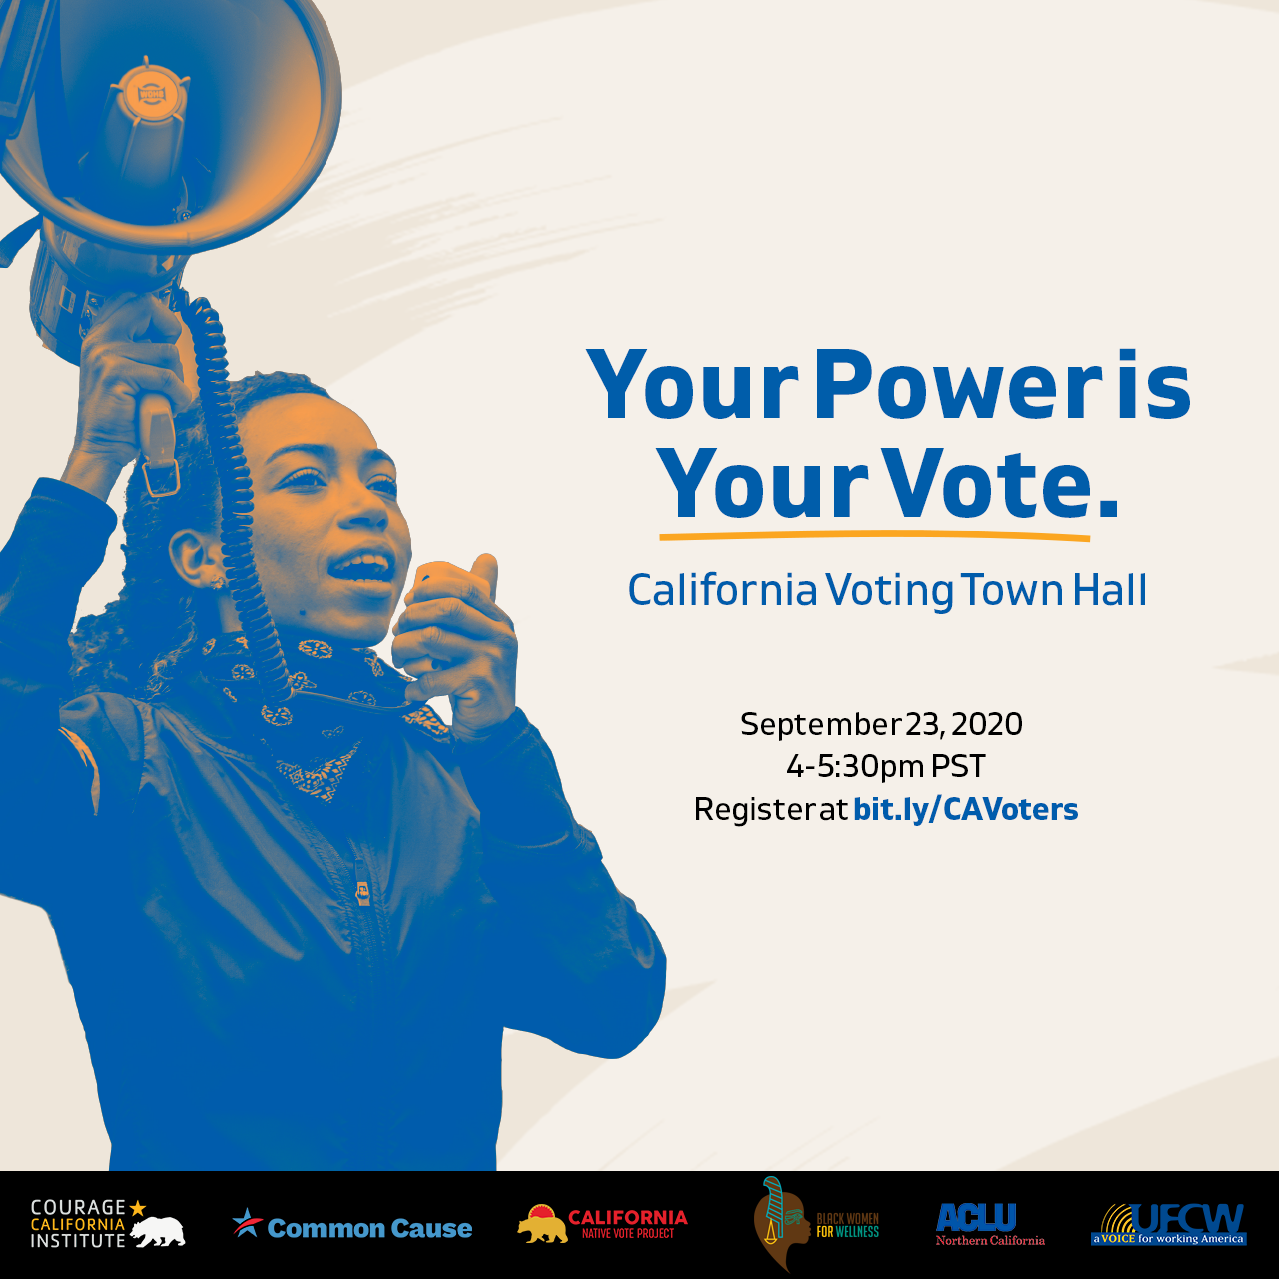 Courage California:Your Power is Your Vote - California Voting Town Hall. Person holding bullhorn, speaking into it.